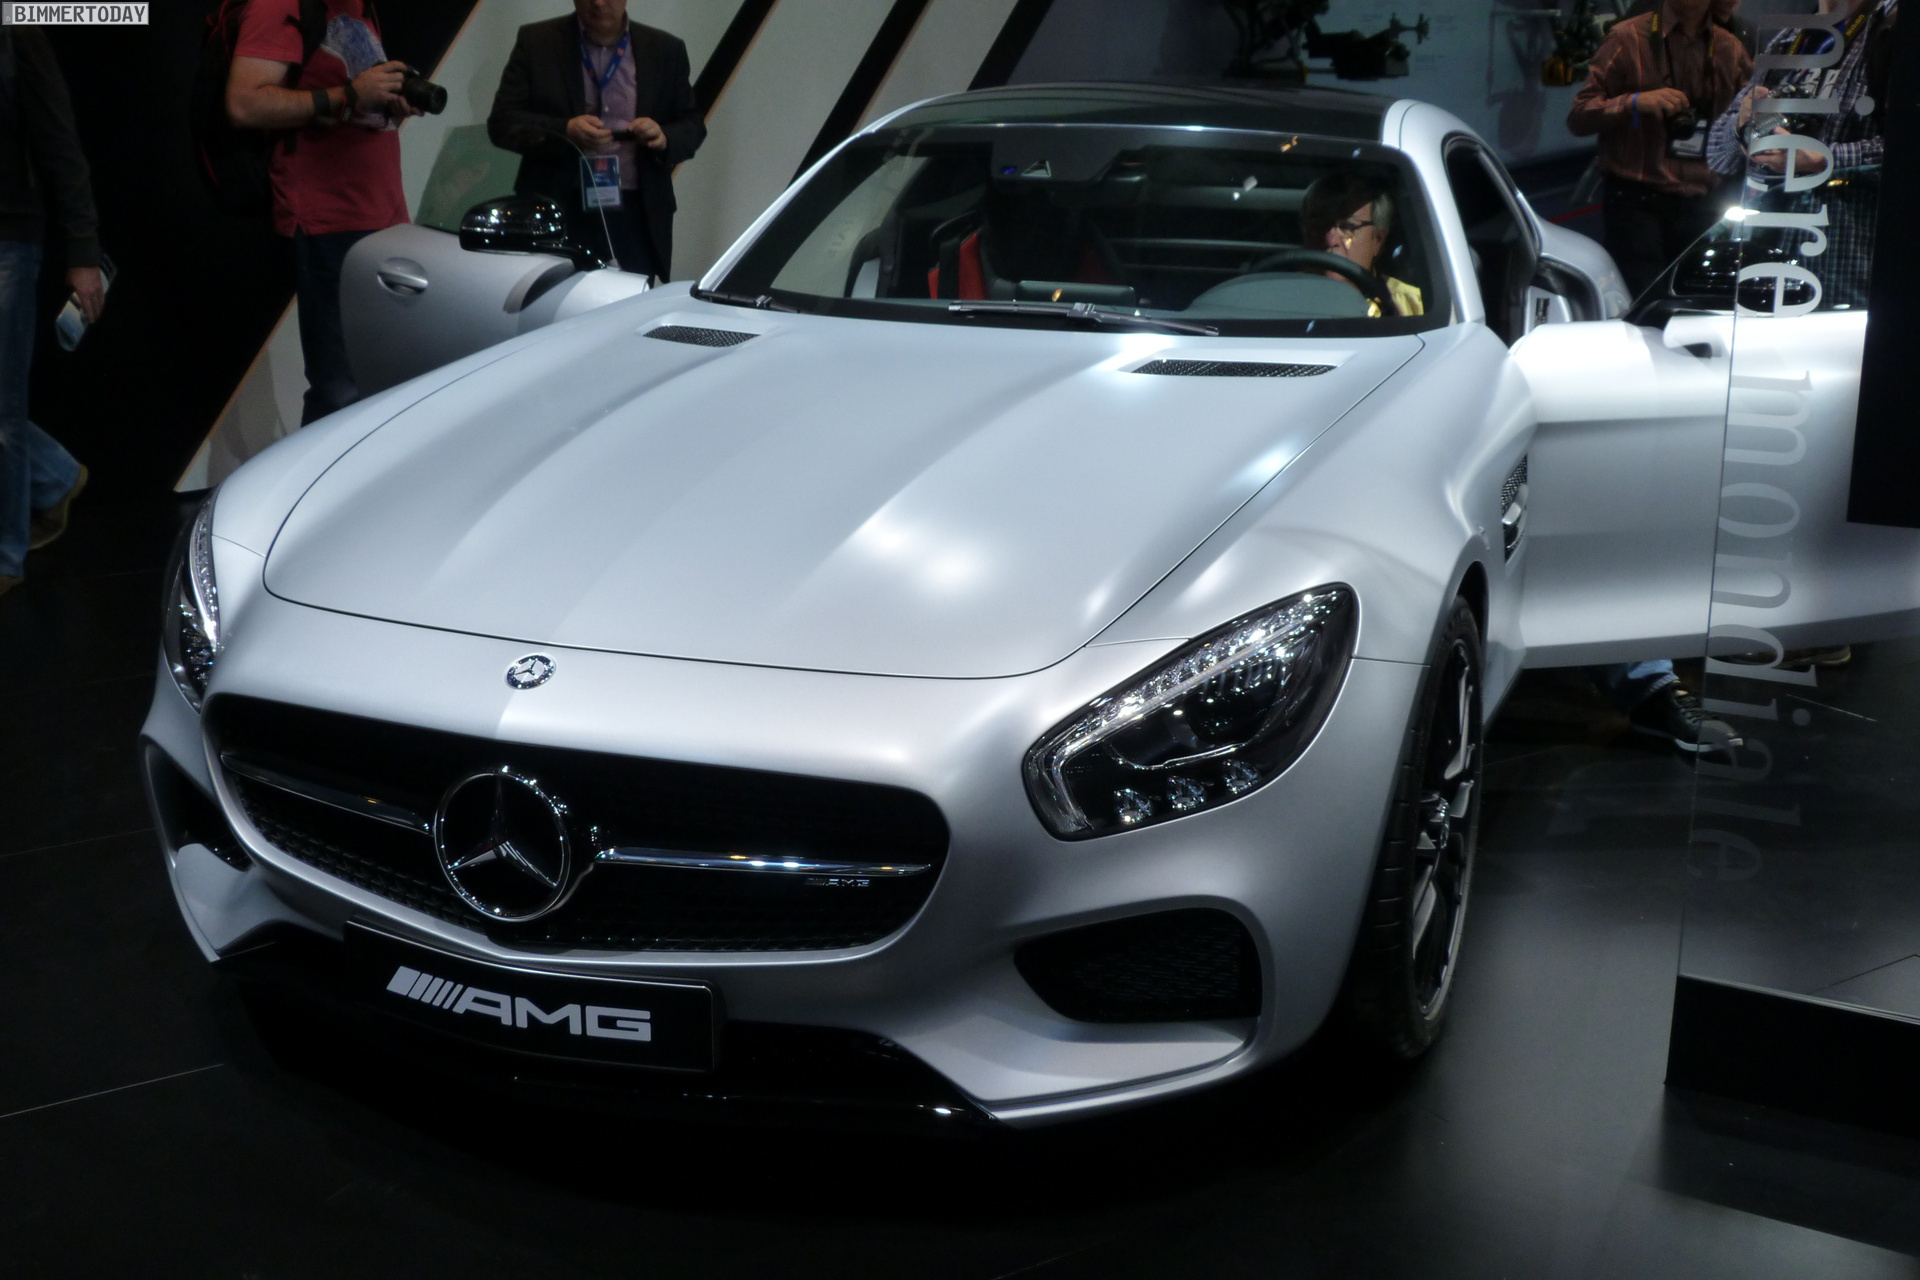 2014 Mercedes Benz AMG GT V8 Biturbo Autosalon Paris LIVE 12